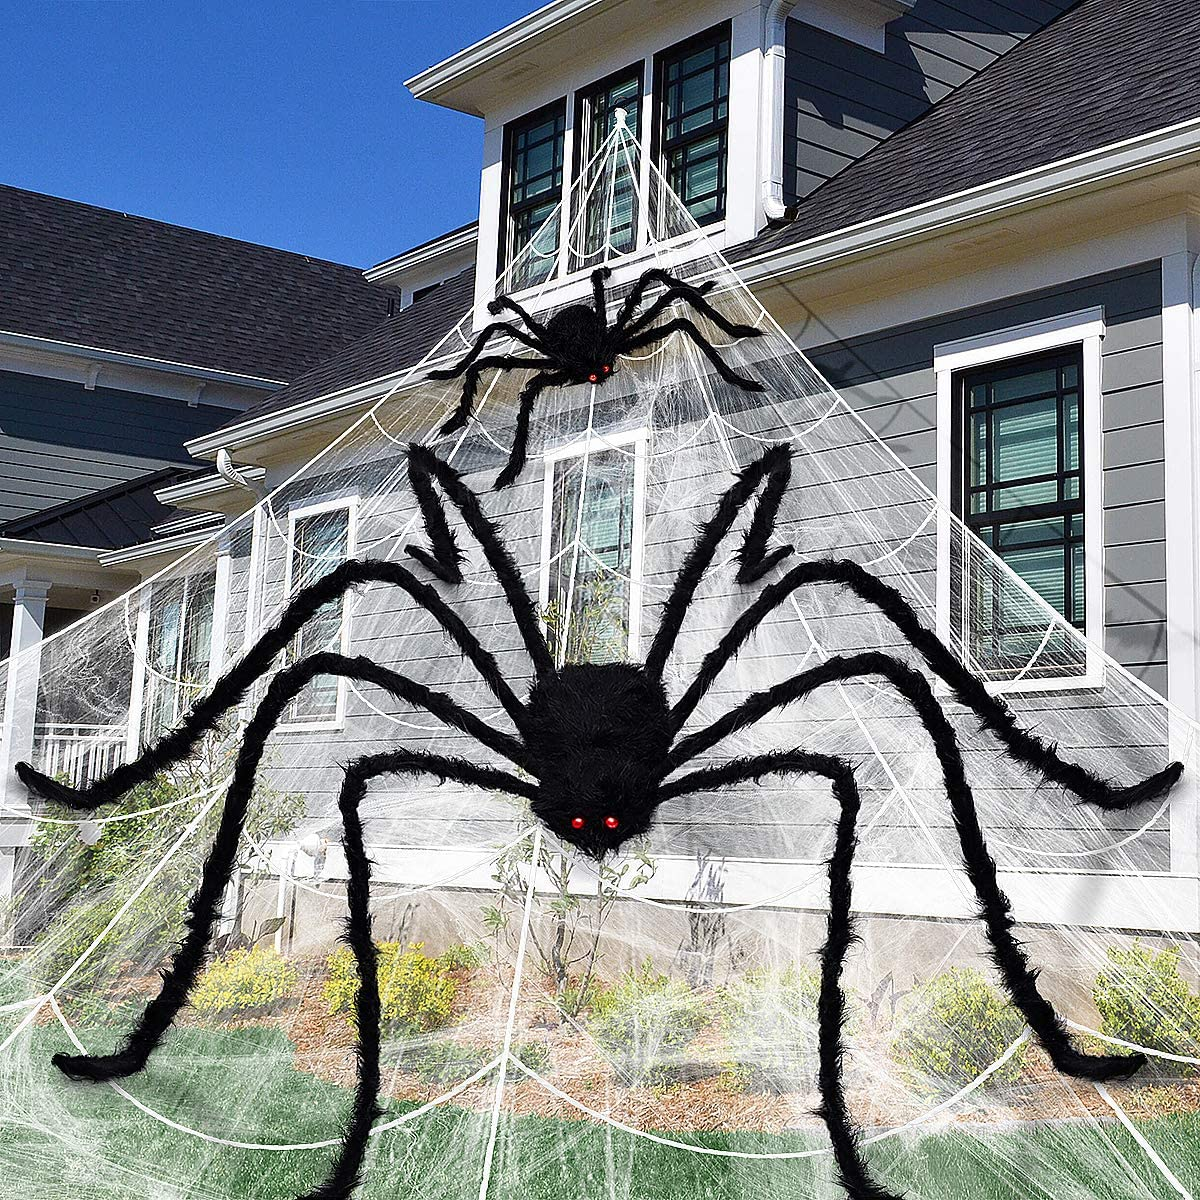 Large Halloween Decorations with Spider Web, Spider, Stretch Cobweb Set for Halloween Yard Outdoor Decorations